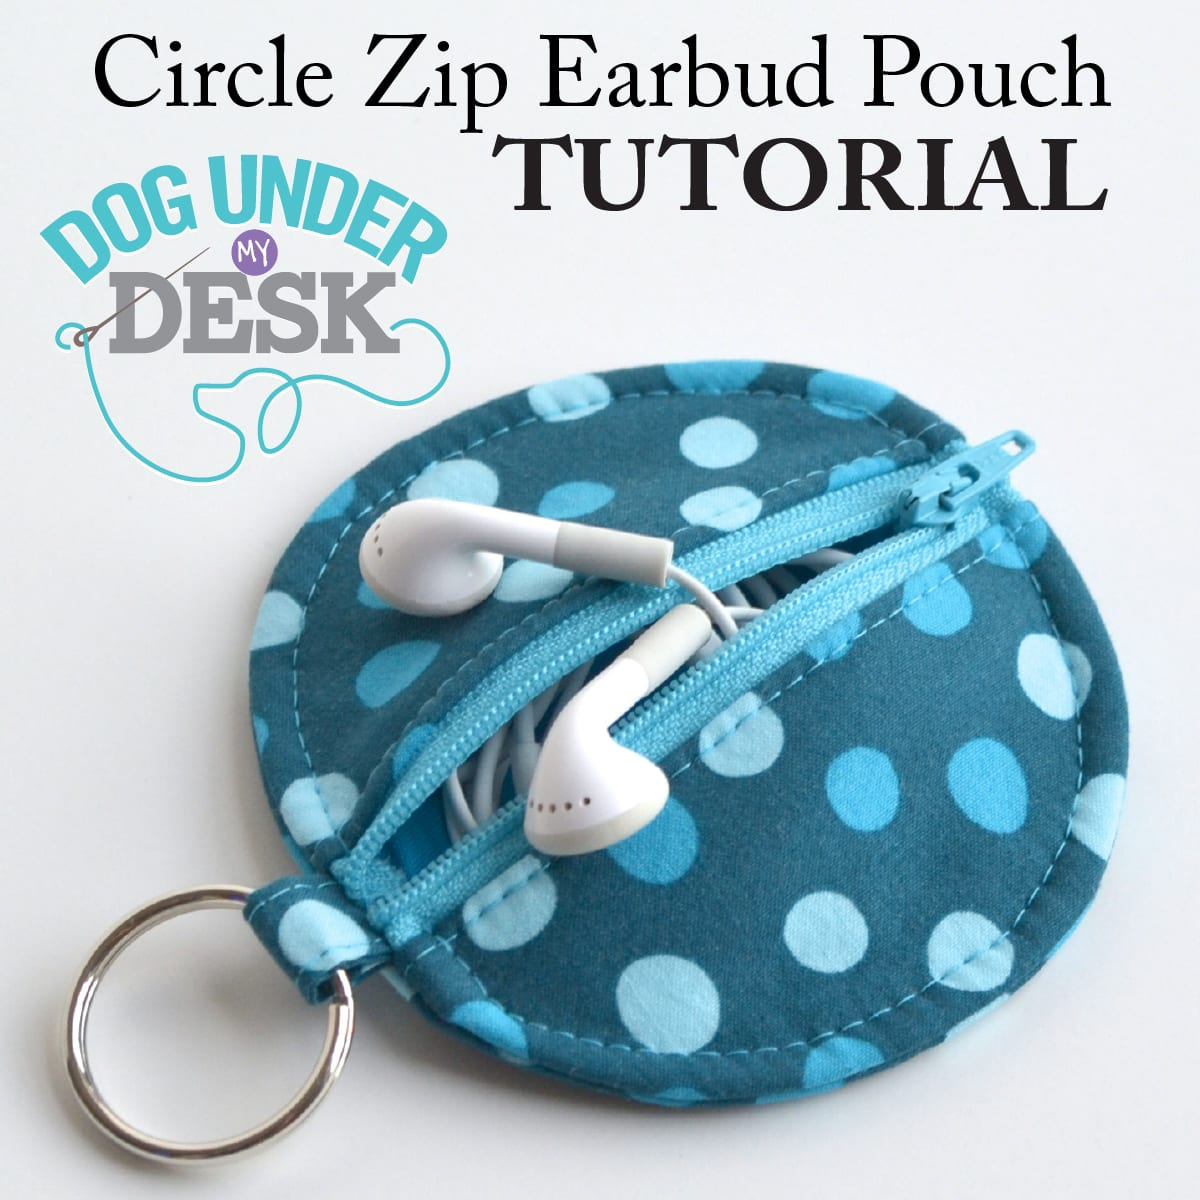 Earbud Pouch FREE Sewing Tutorial